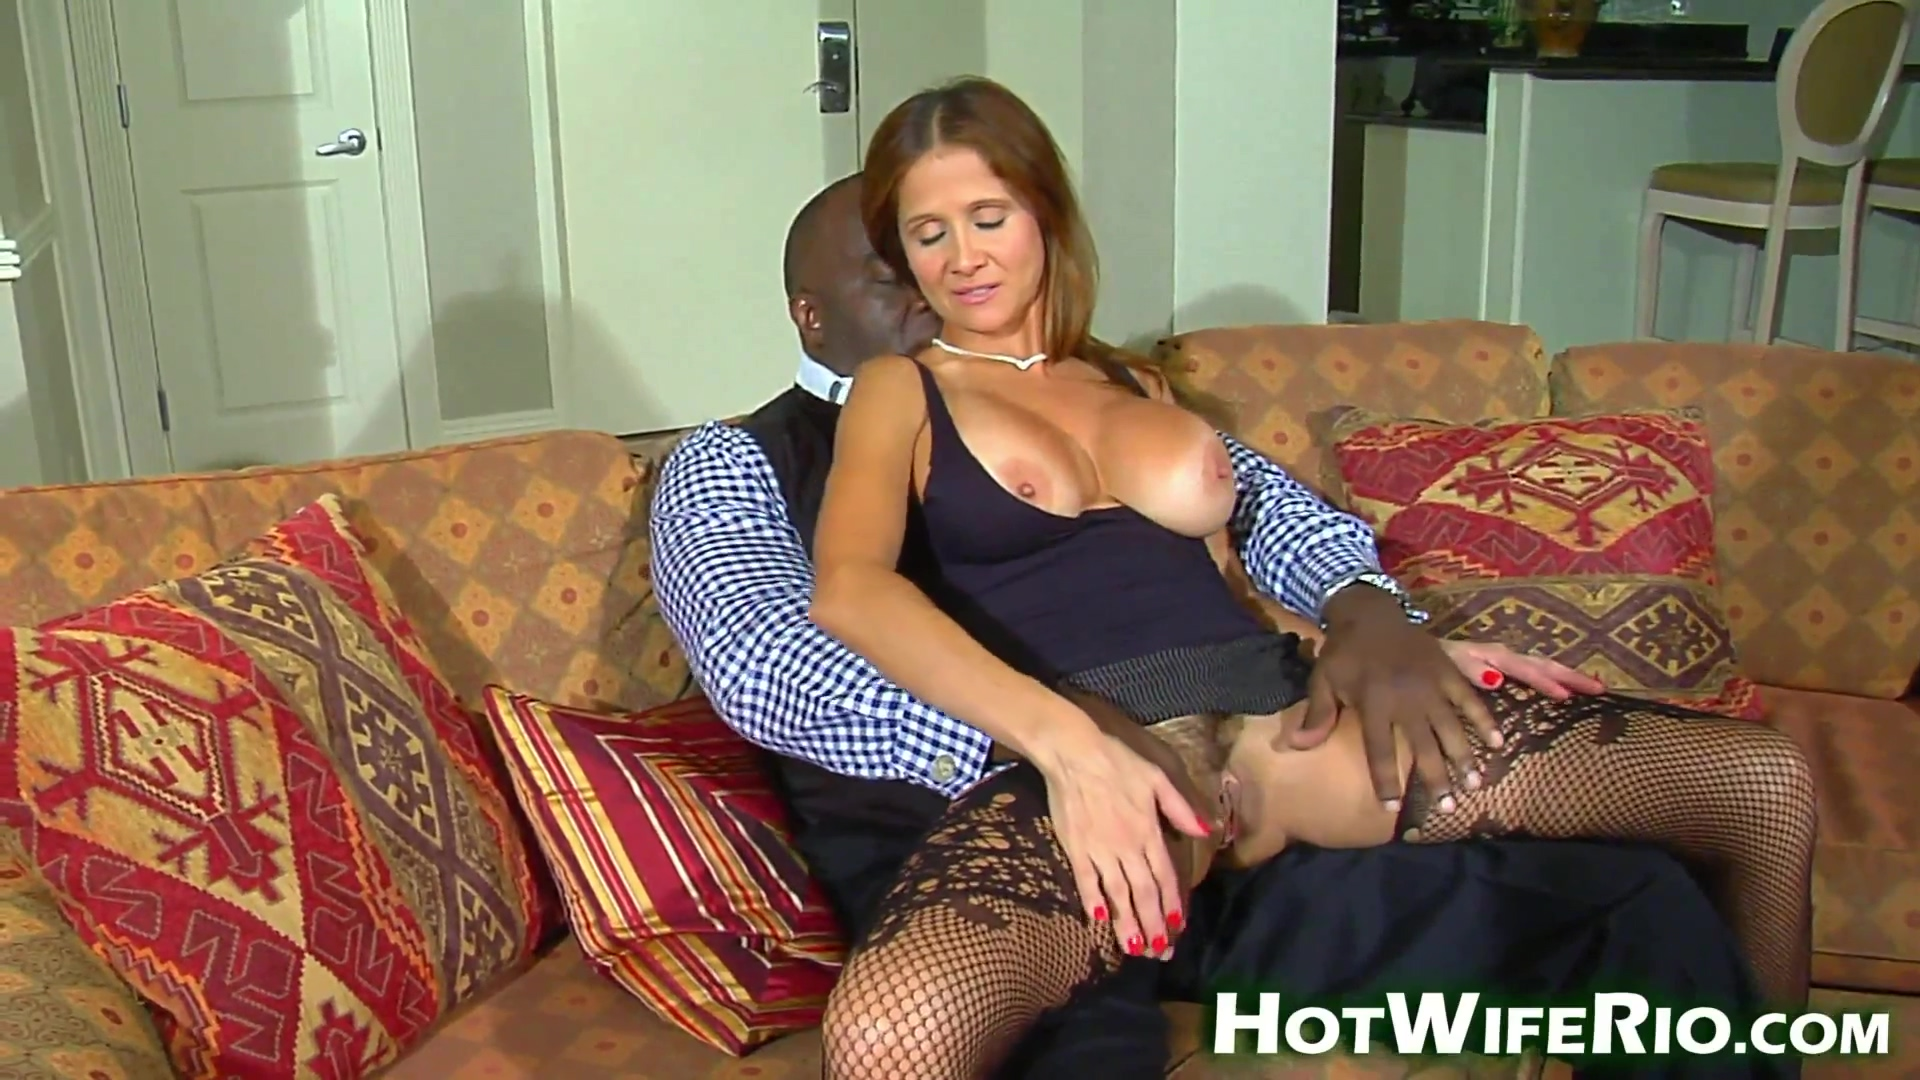 Hot Wife Rio In This Sexy Milf Is Getting Fucked By A Huge Black One